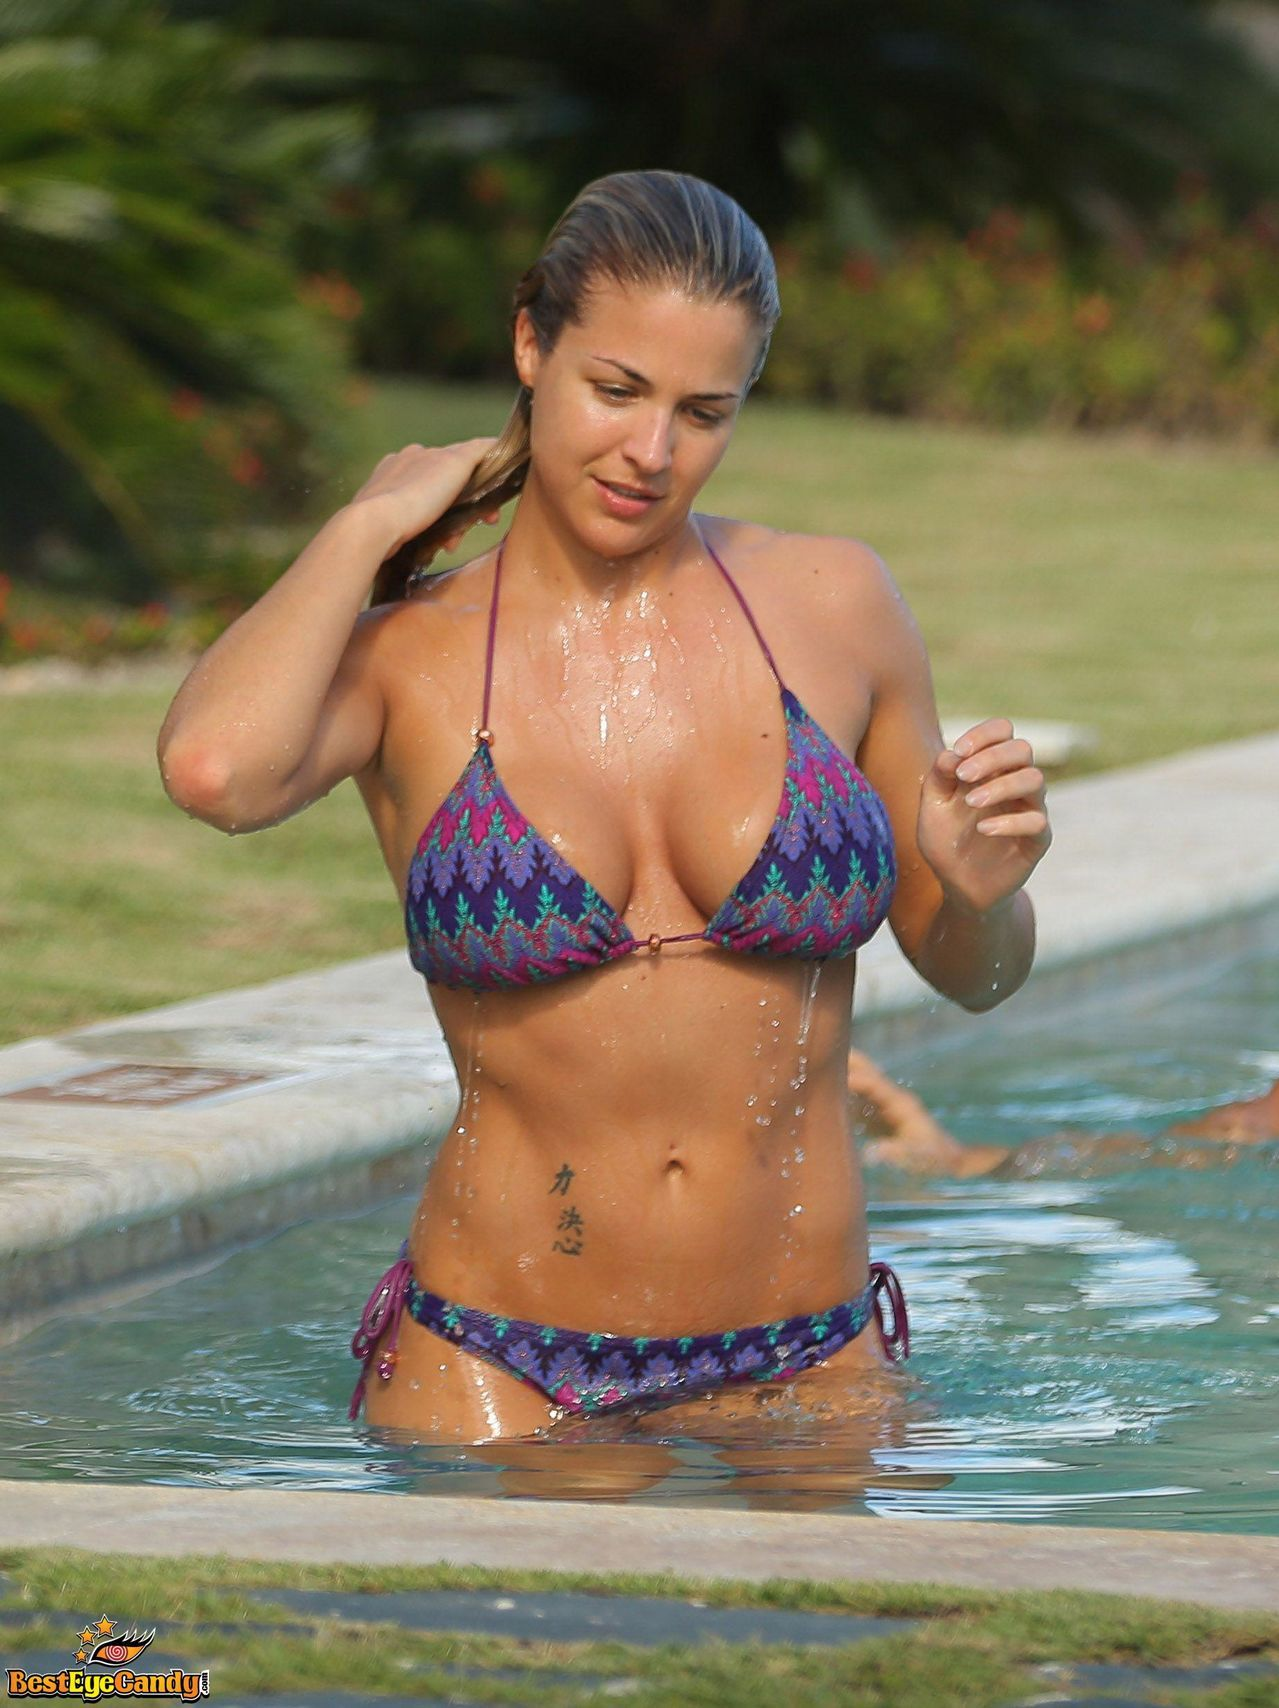 wet-busty-bikini-girls-christina-model-big-tits